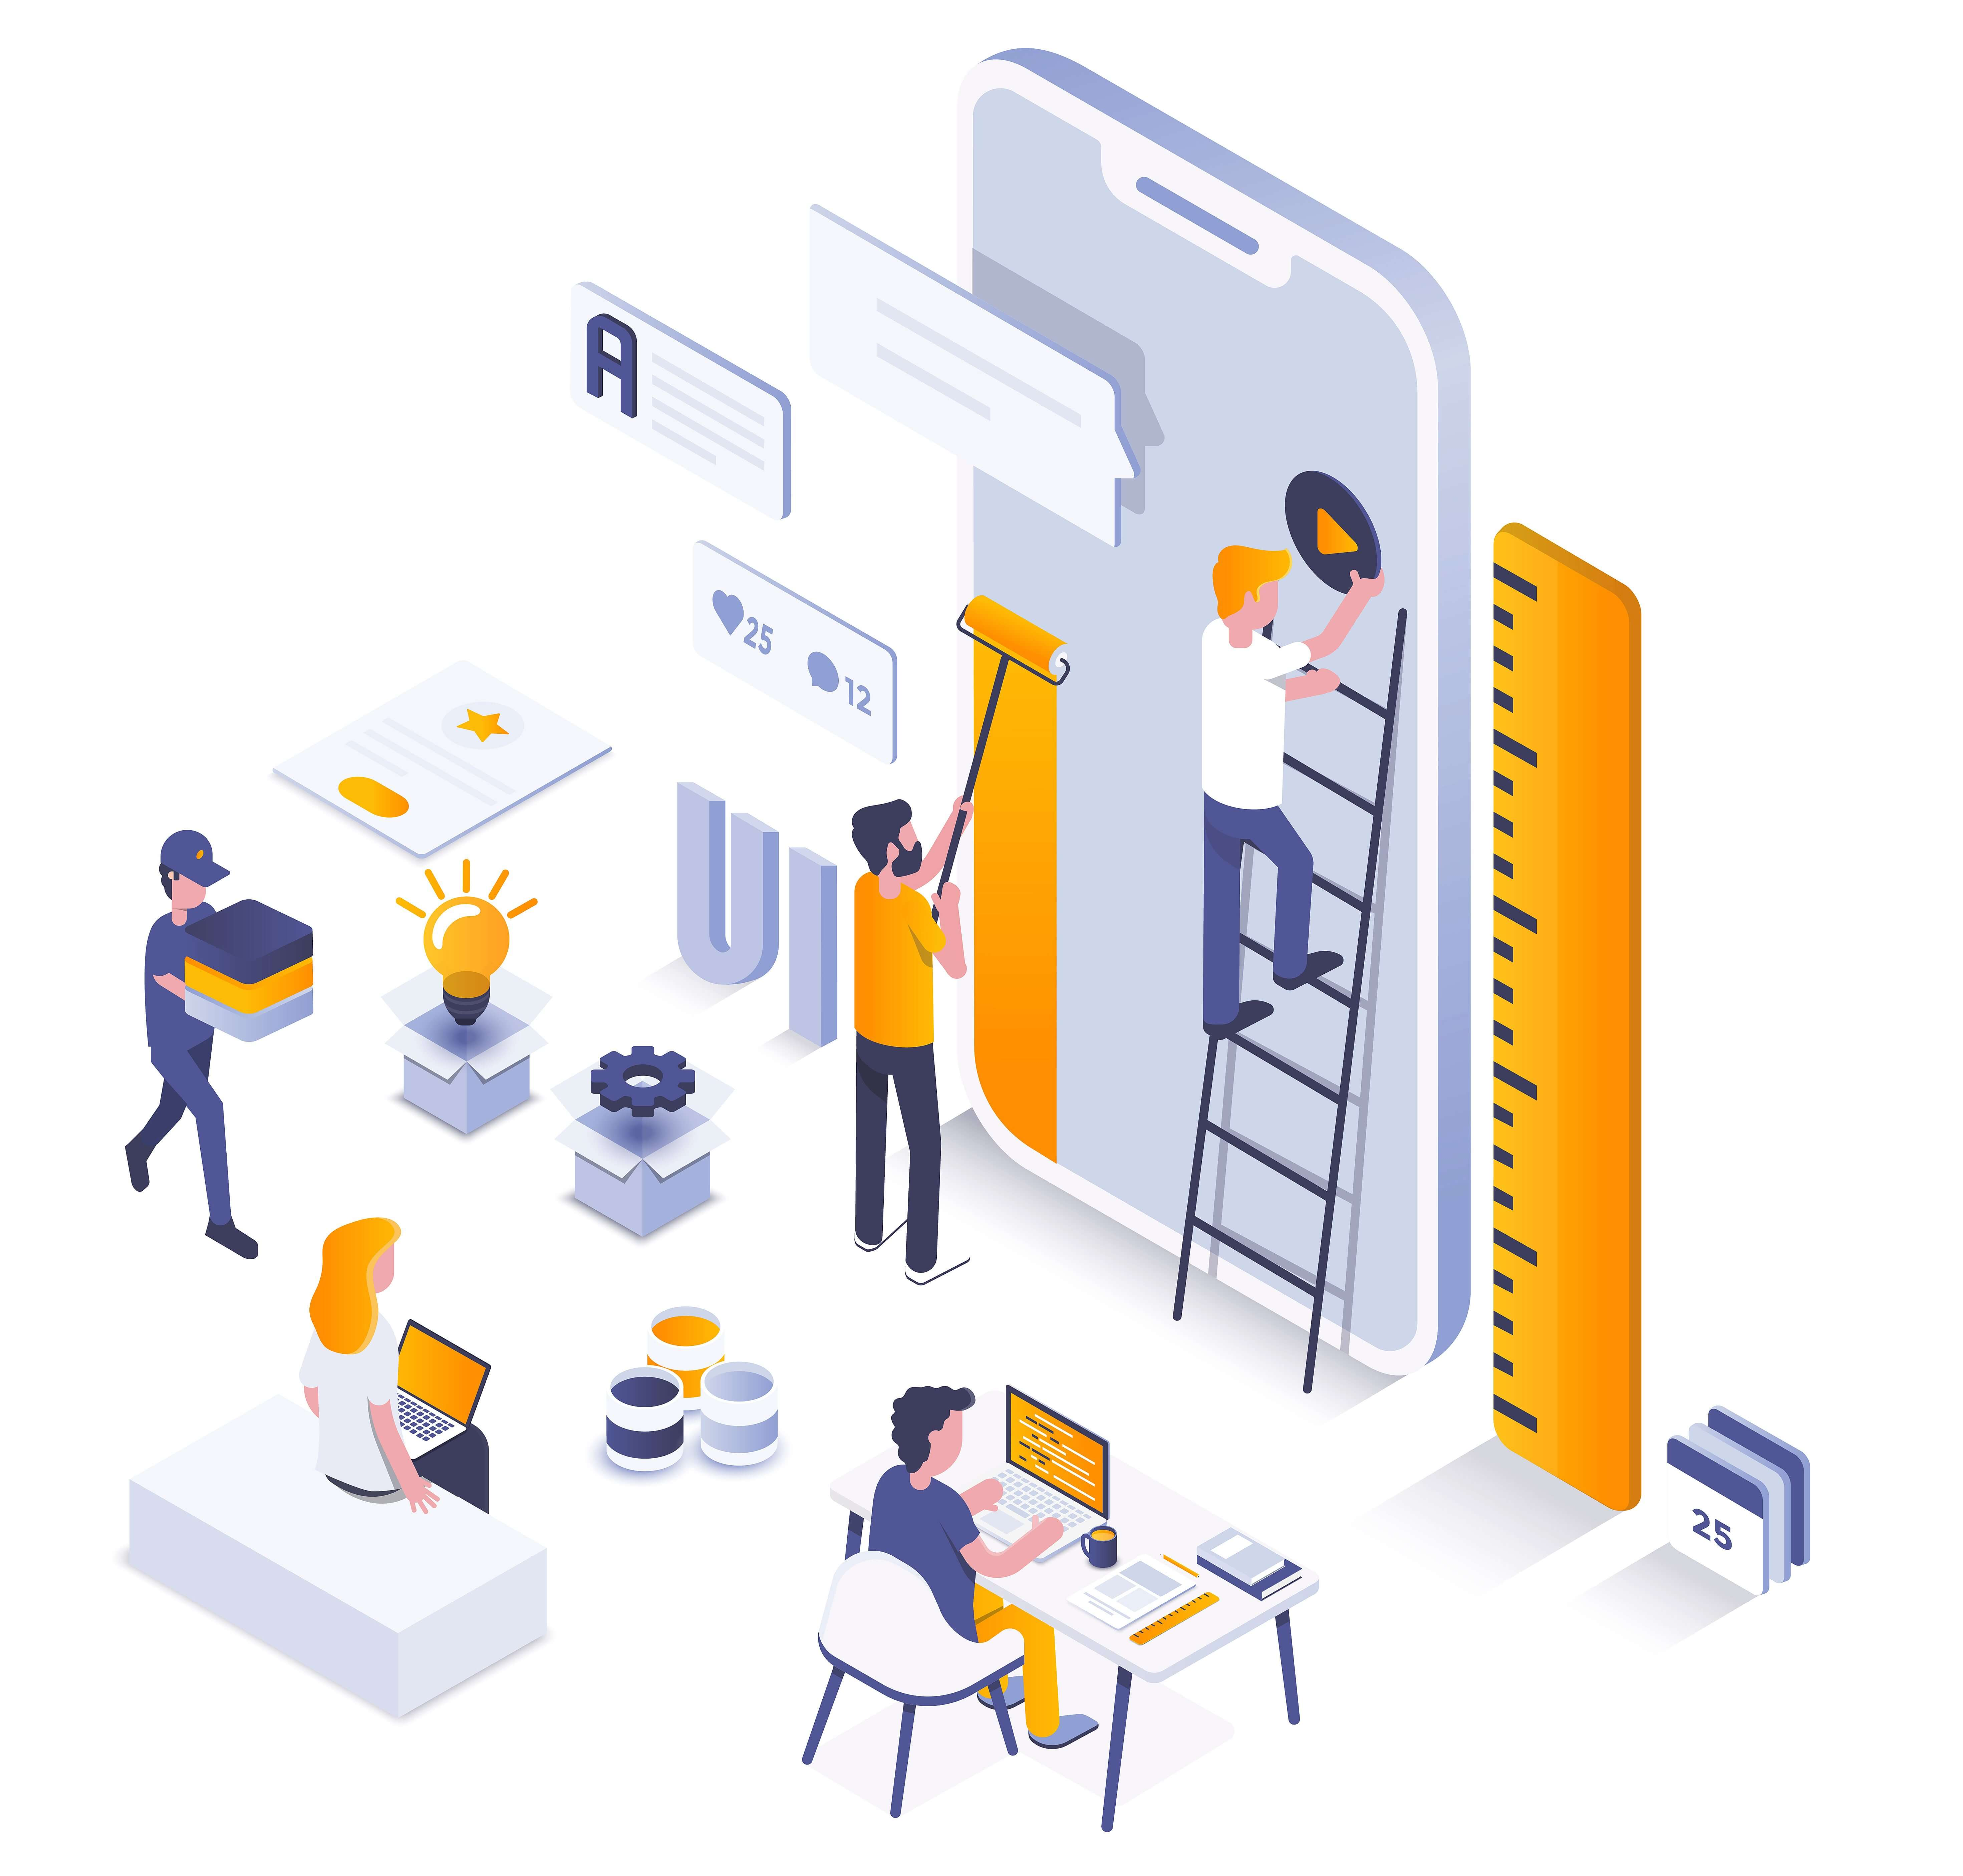 Mobile App development illustration